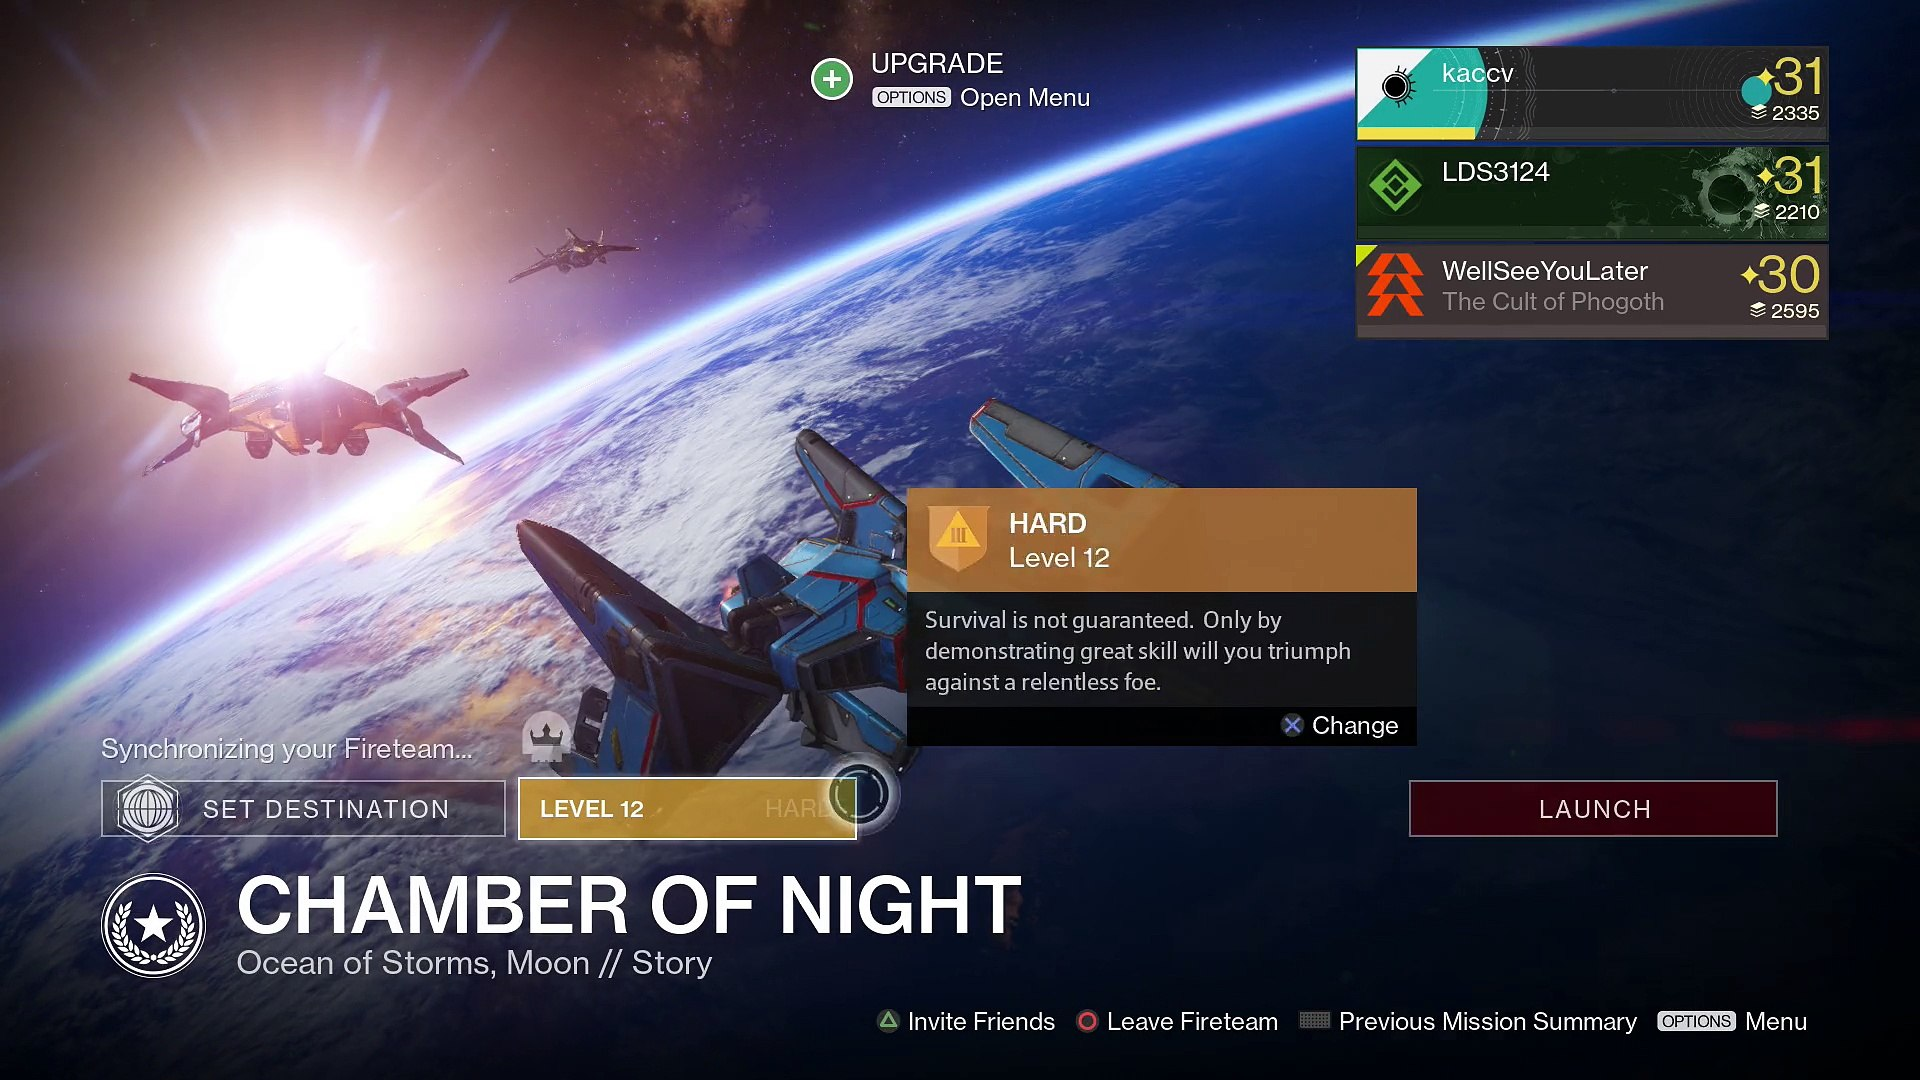 Destiny PS4 [Invective] Coop Part 667 - (Chamber of Night, Moon) Story [With Commentary]